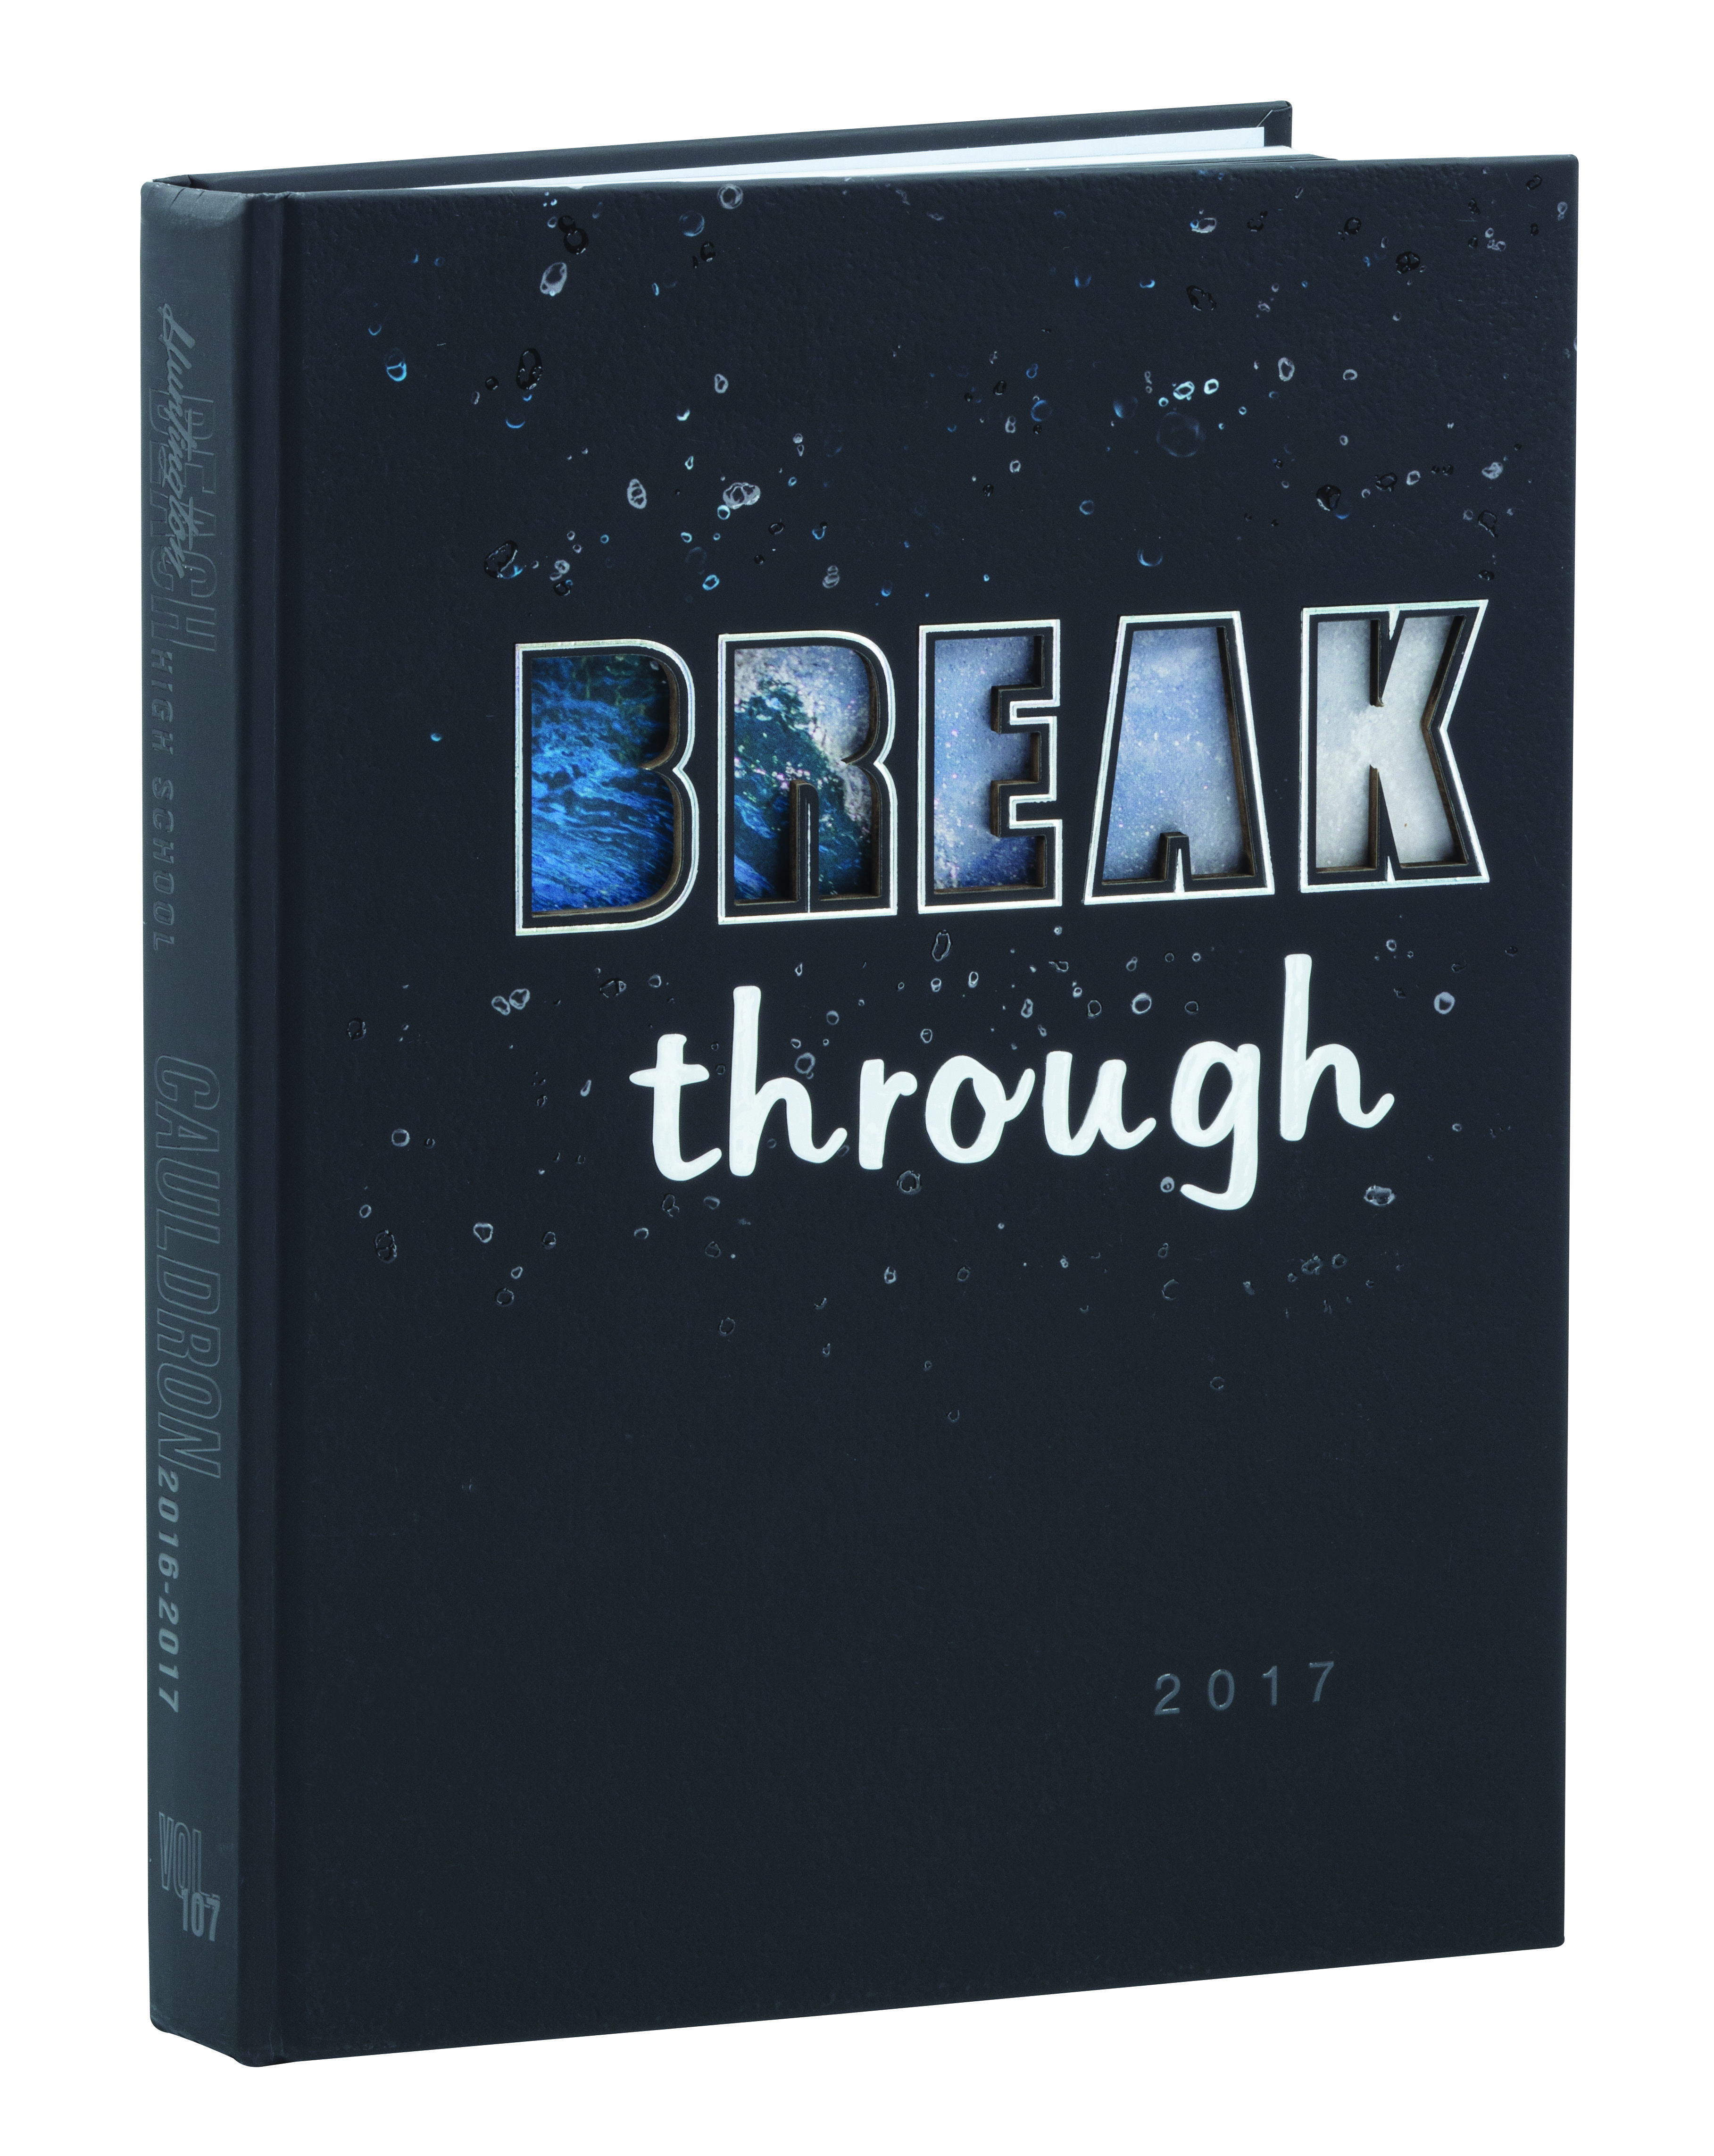 Cauldron Huntington Beach High School Ca Yearbook Themes Yearbook Layouts Yearbook Covers Themes